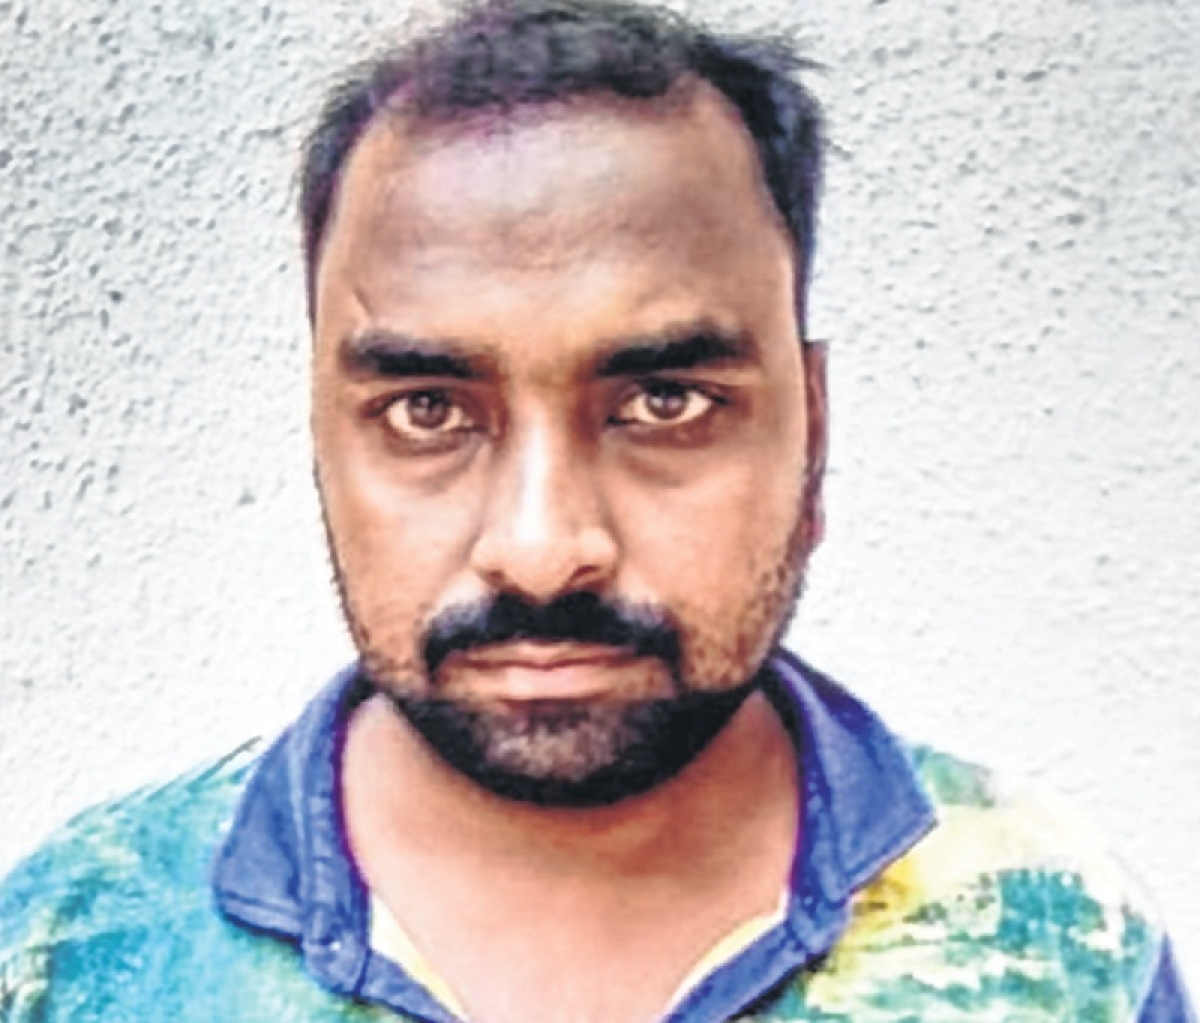 Cop nabbed for molesting 4-year-old girl, suspended